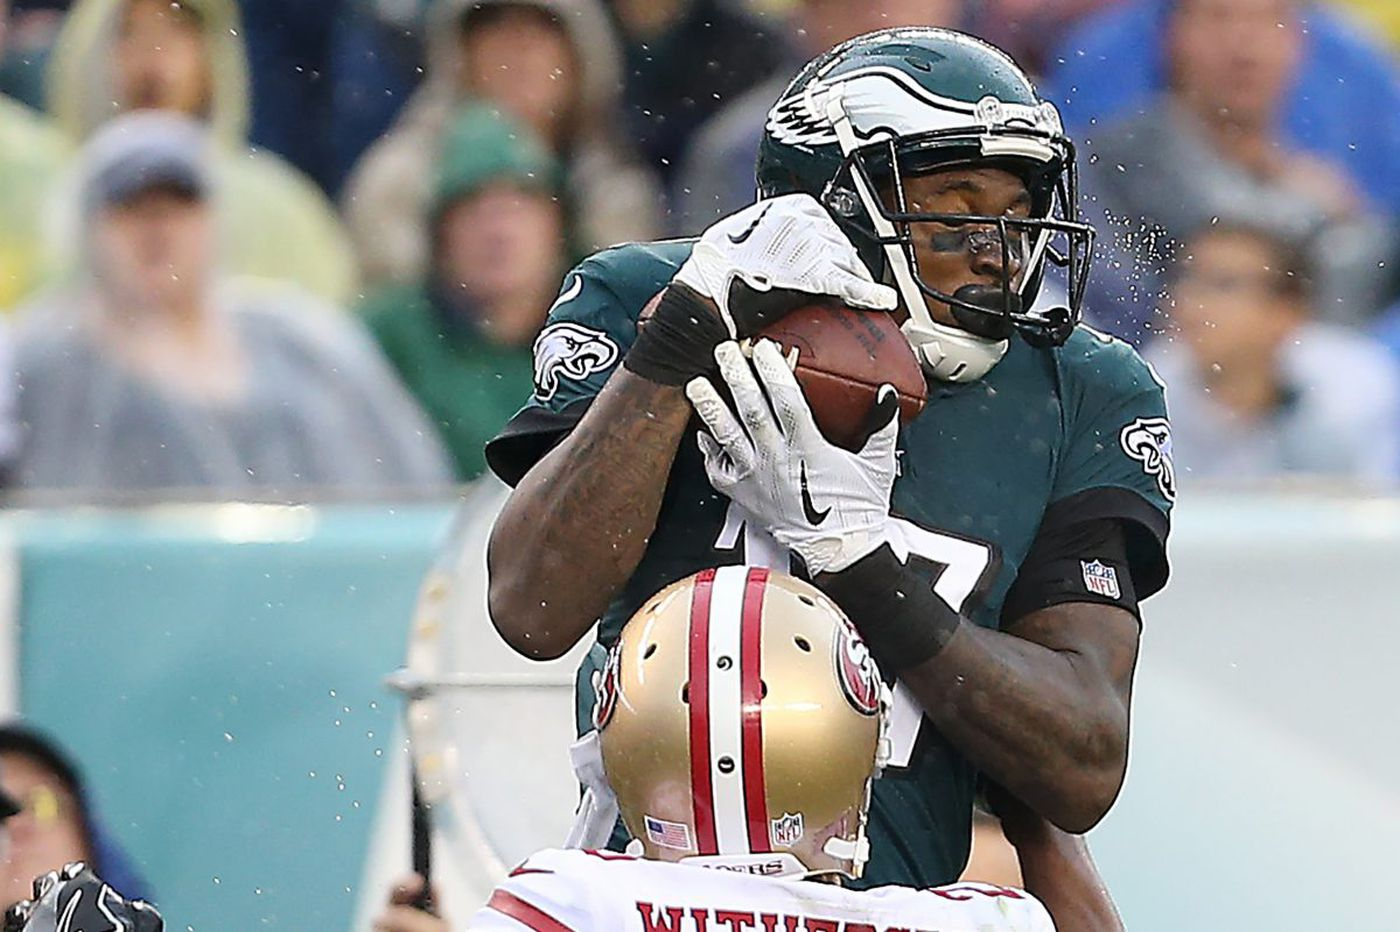 Eagles-49ers: What we learned